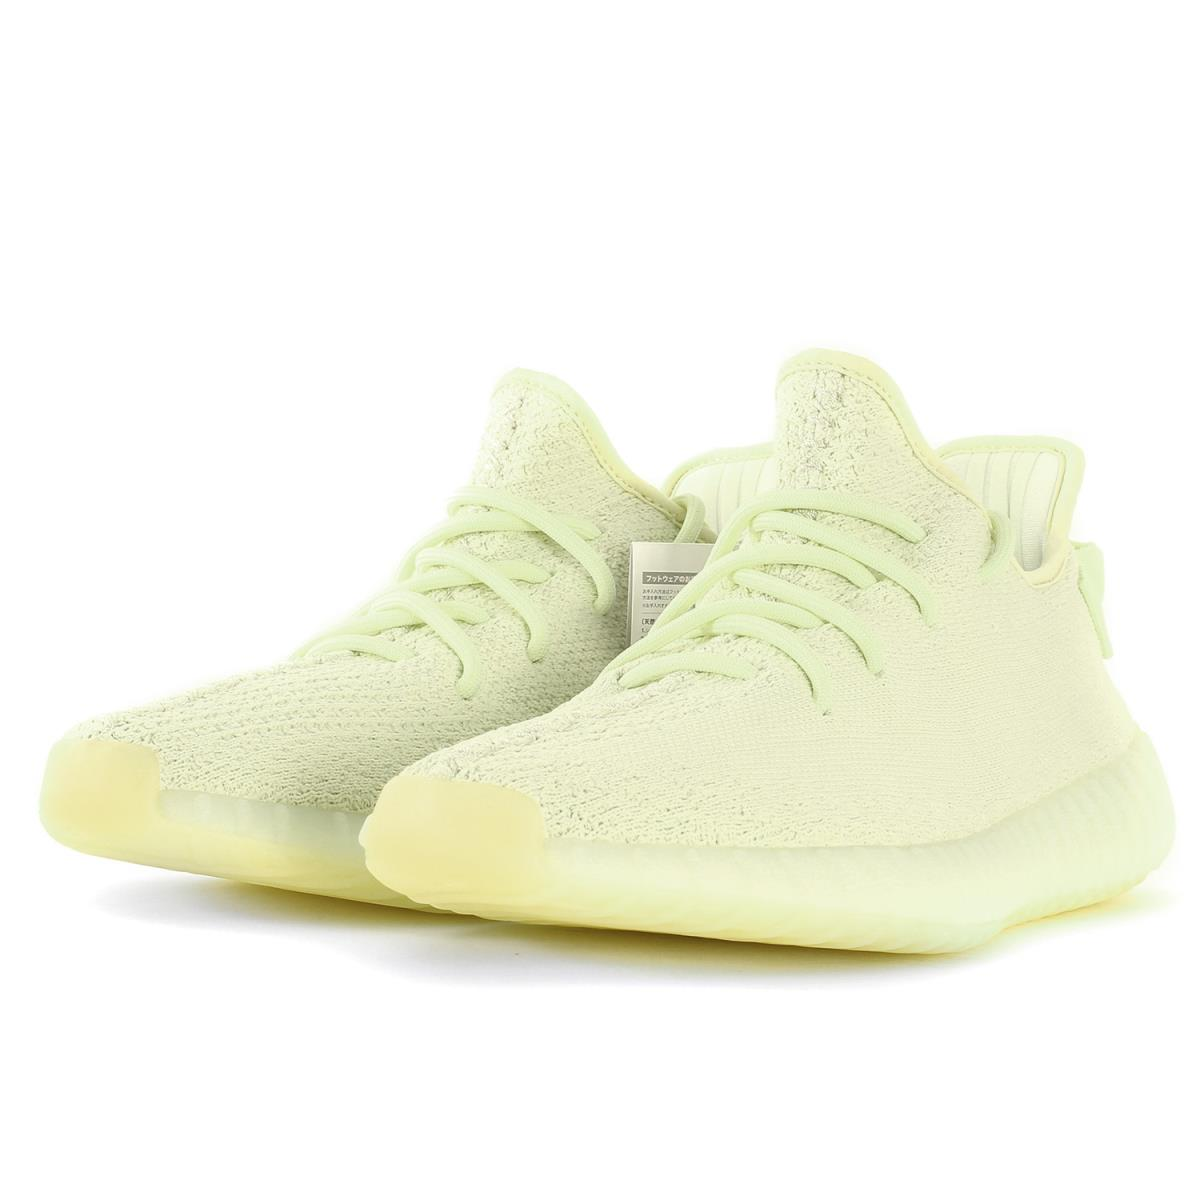 6df8a2b9937 BEEGLE by Boo-Bee  adidas (Adidas) 18S S YEEZY BOOST 350 V2 BUTTER (F36980)  butter US8(26cm)